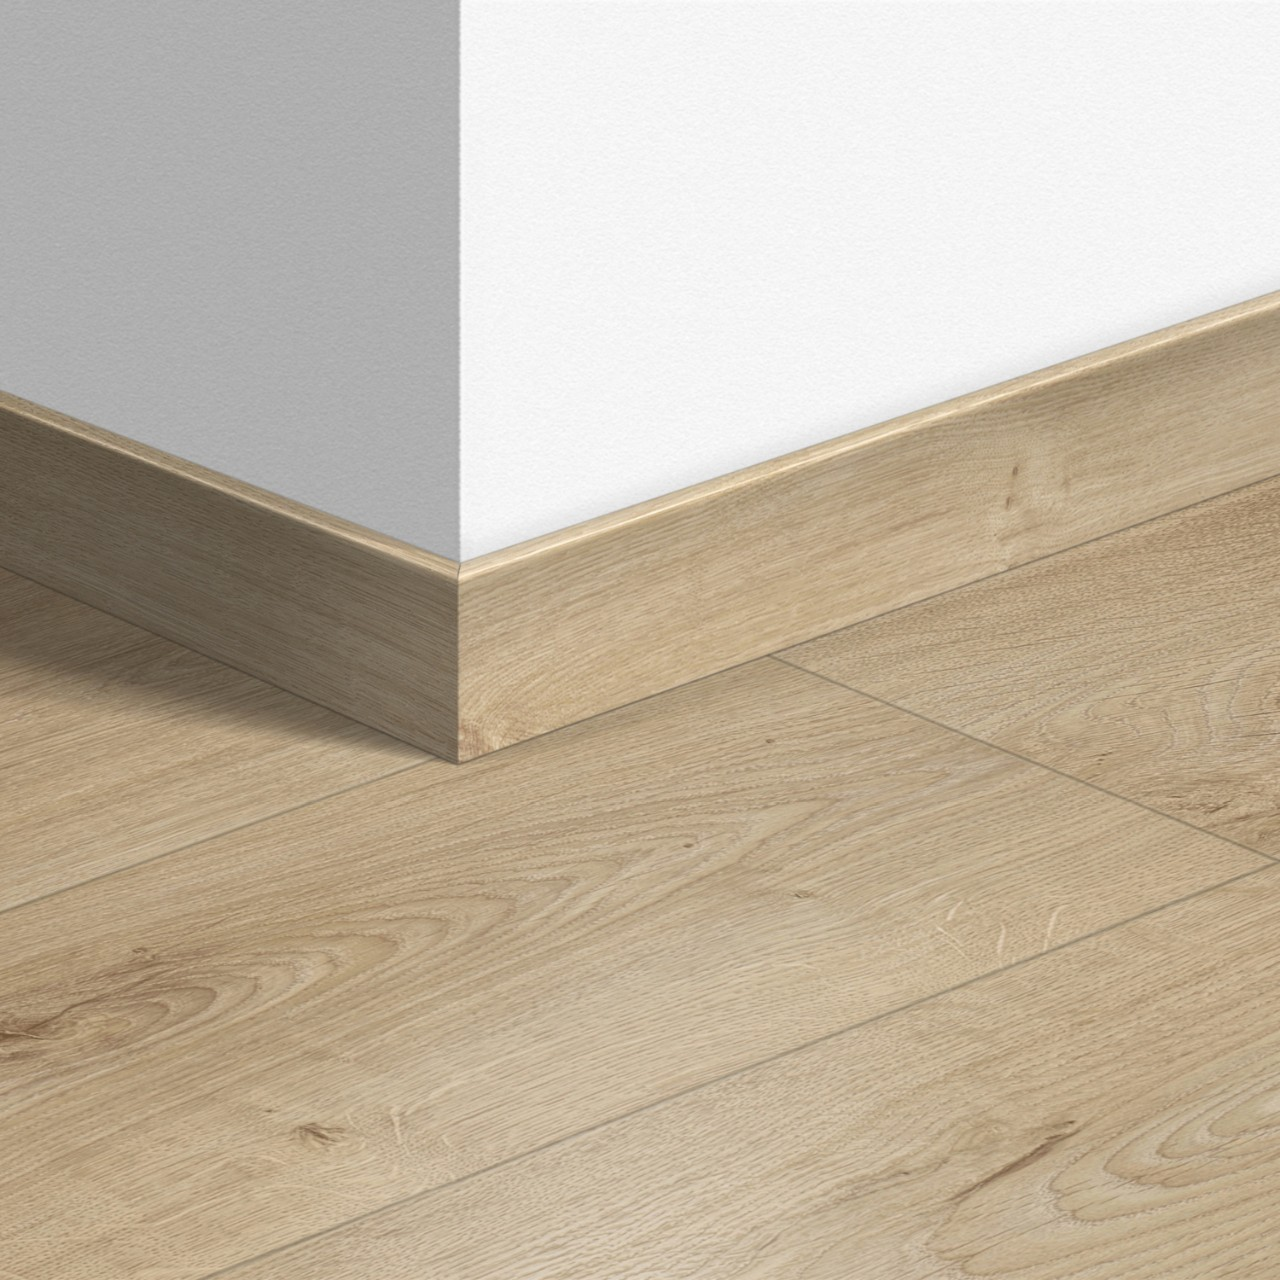 QSSK Laminate Accessories Classic oak beige QSSK01847